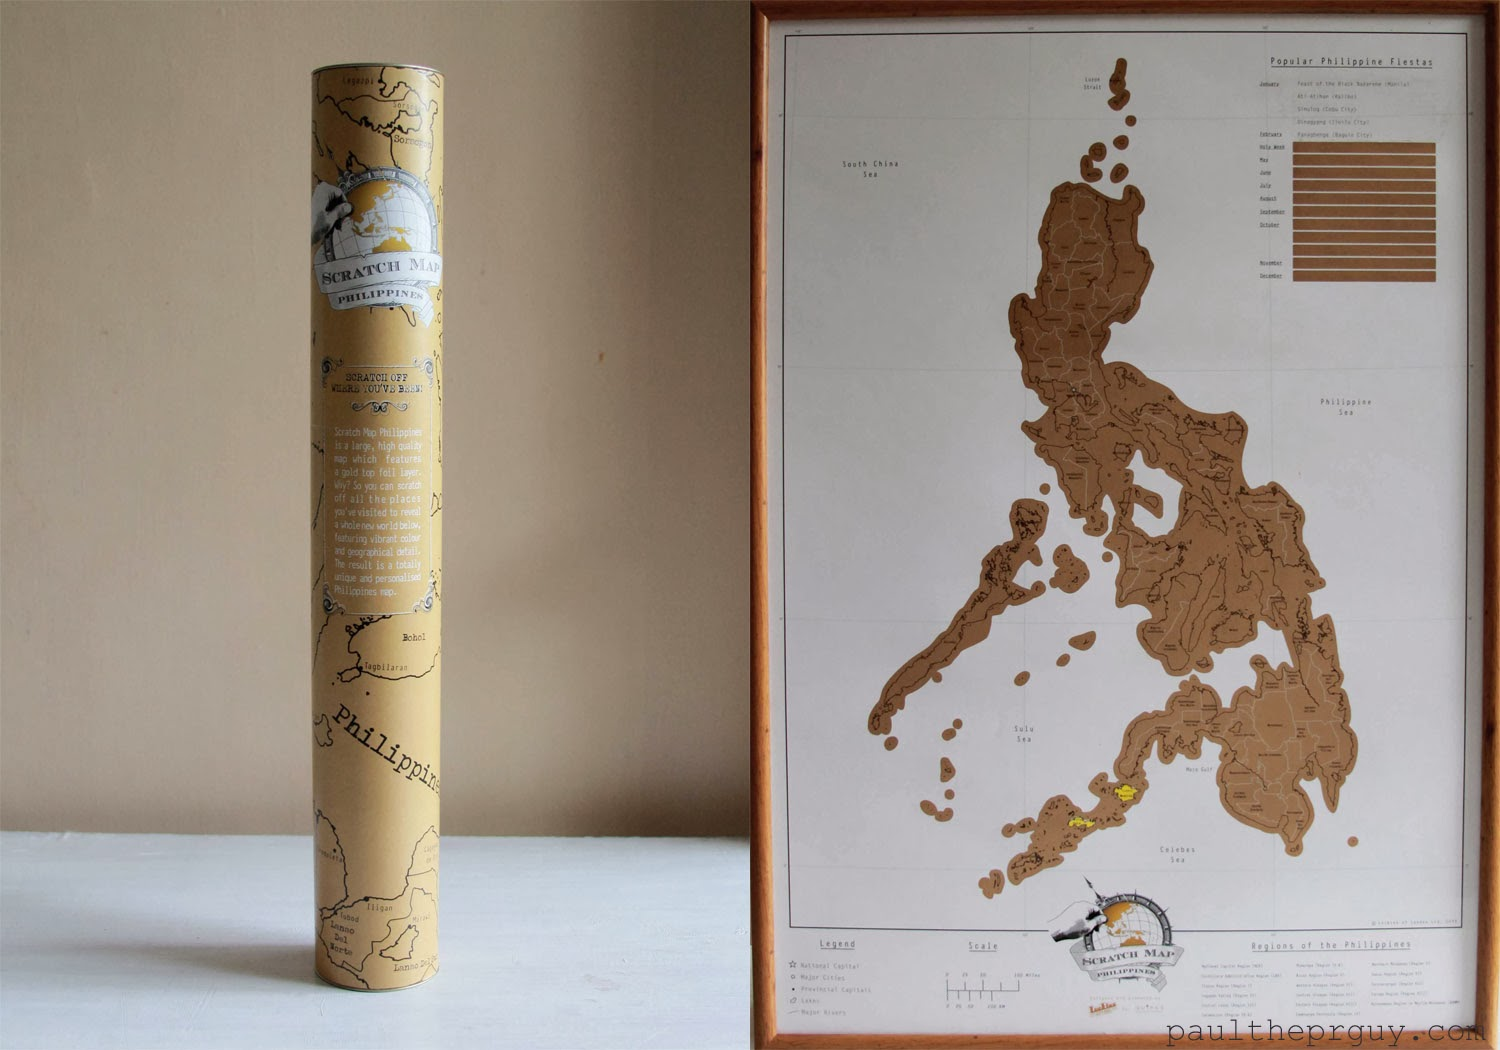 7e9f79d03f So you can scratch off all the places you've visited to reveal a whole new  map below! The result is a totally unique and personalized Philippines map!